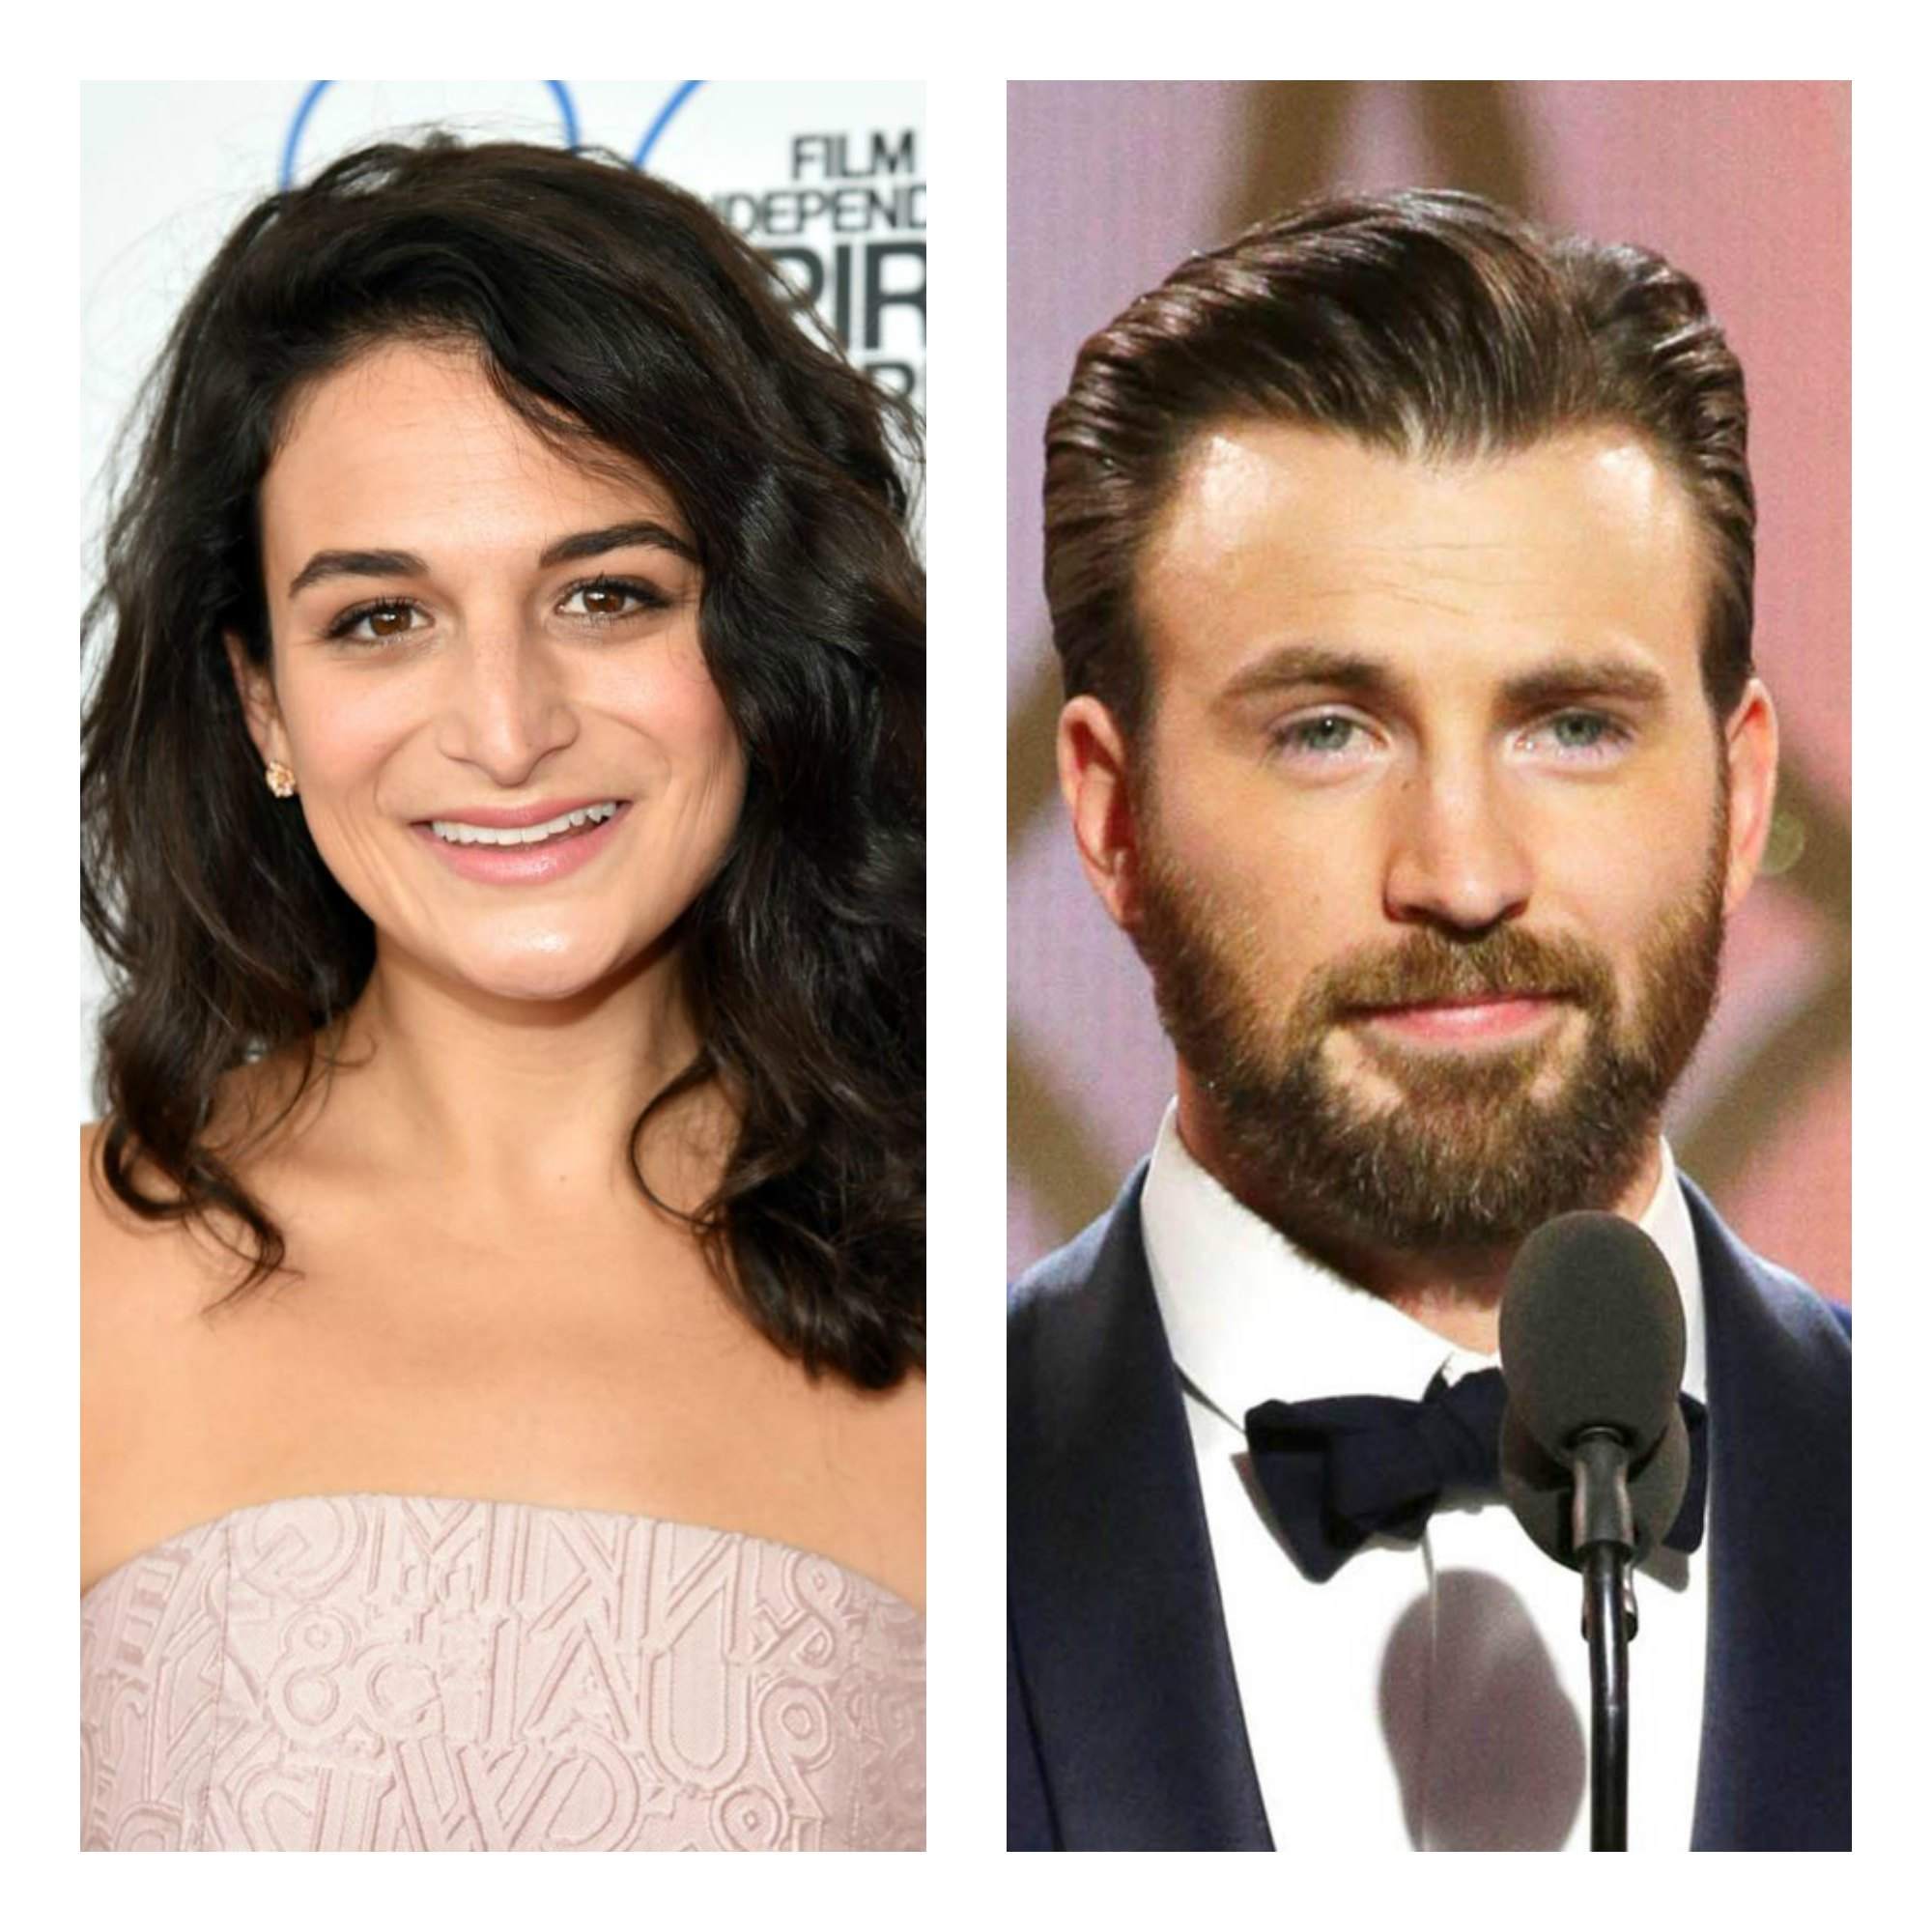 Jenny Slate and Chris Evans